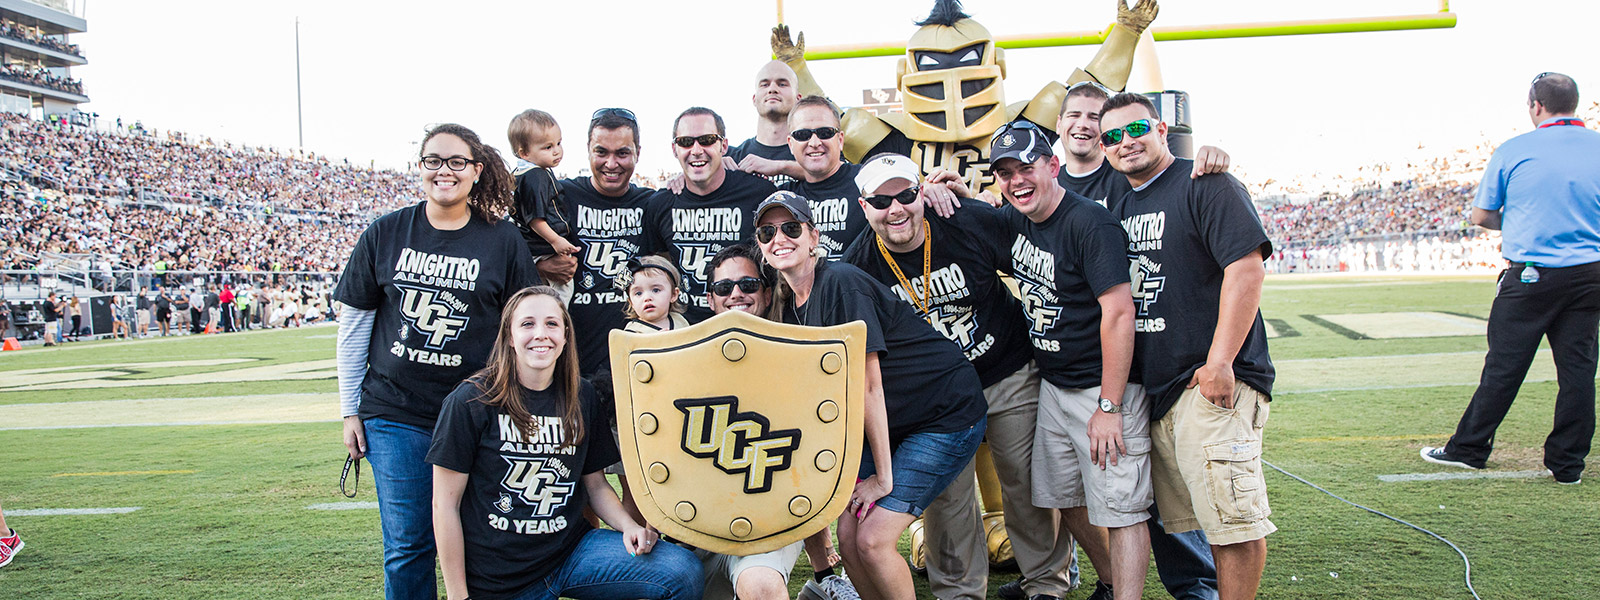 group of ucf students standing together on the football field